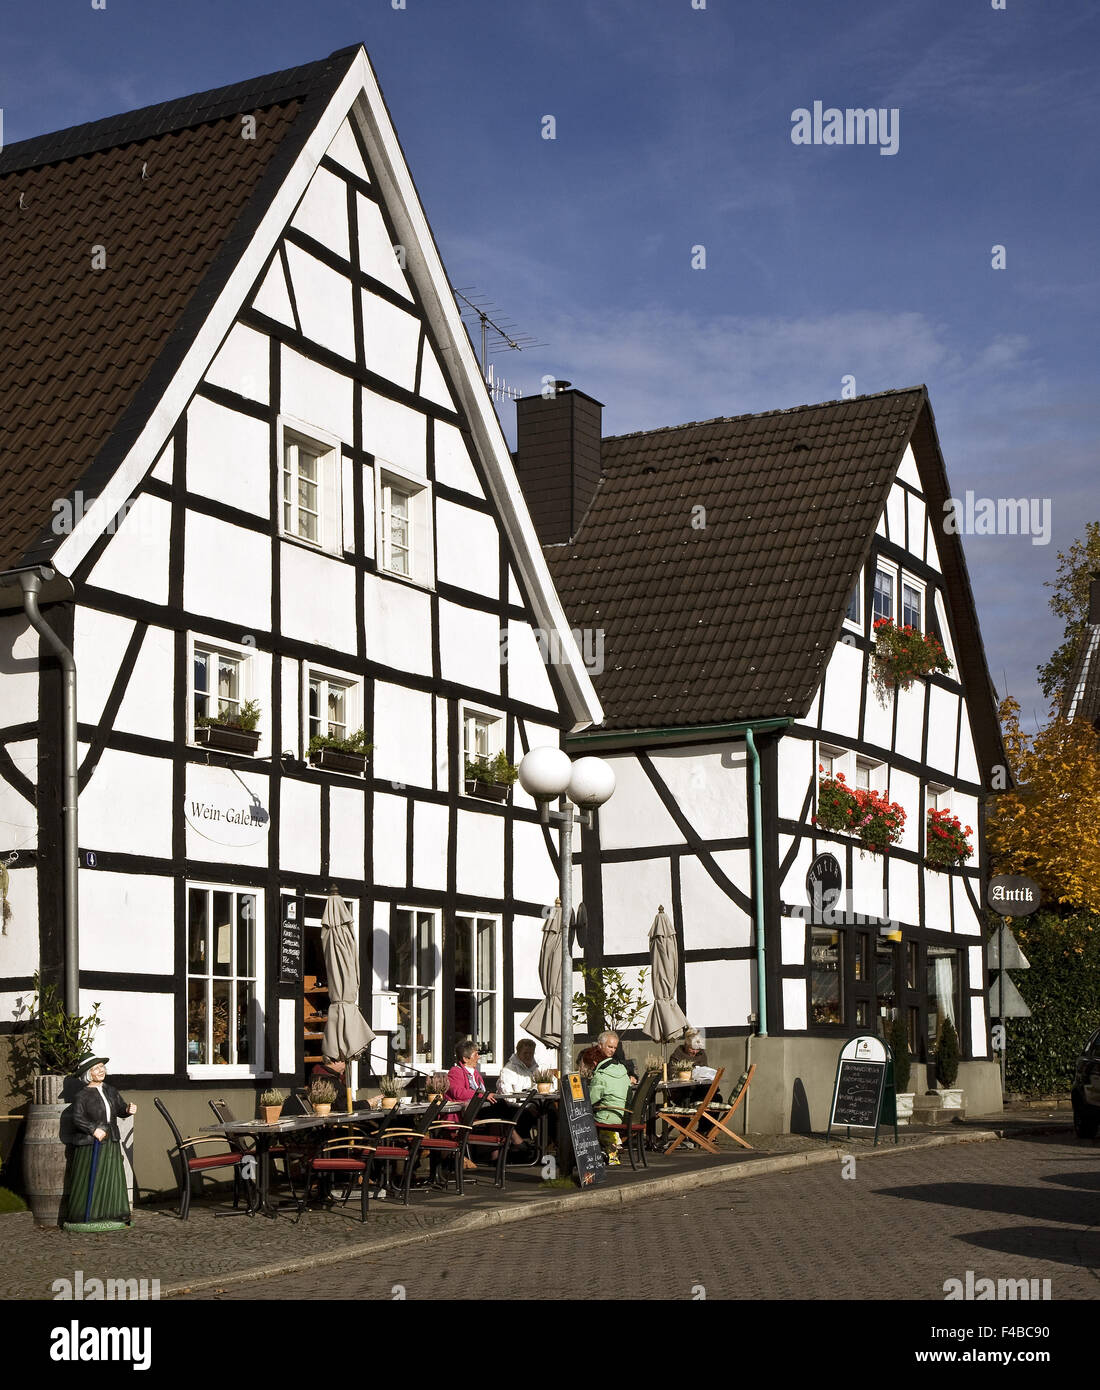 Maisons à colombages, Herdecke, Allemagne. Photo Stock